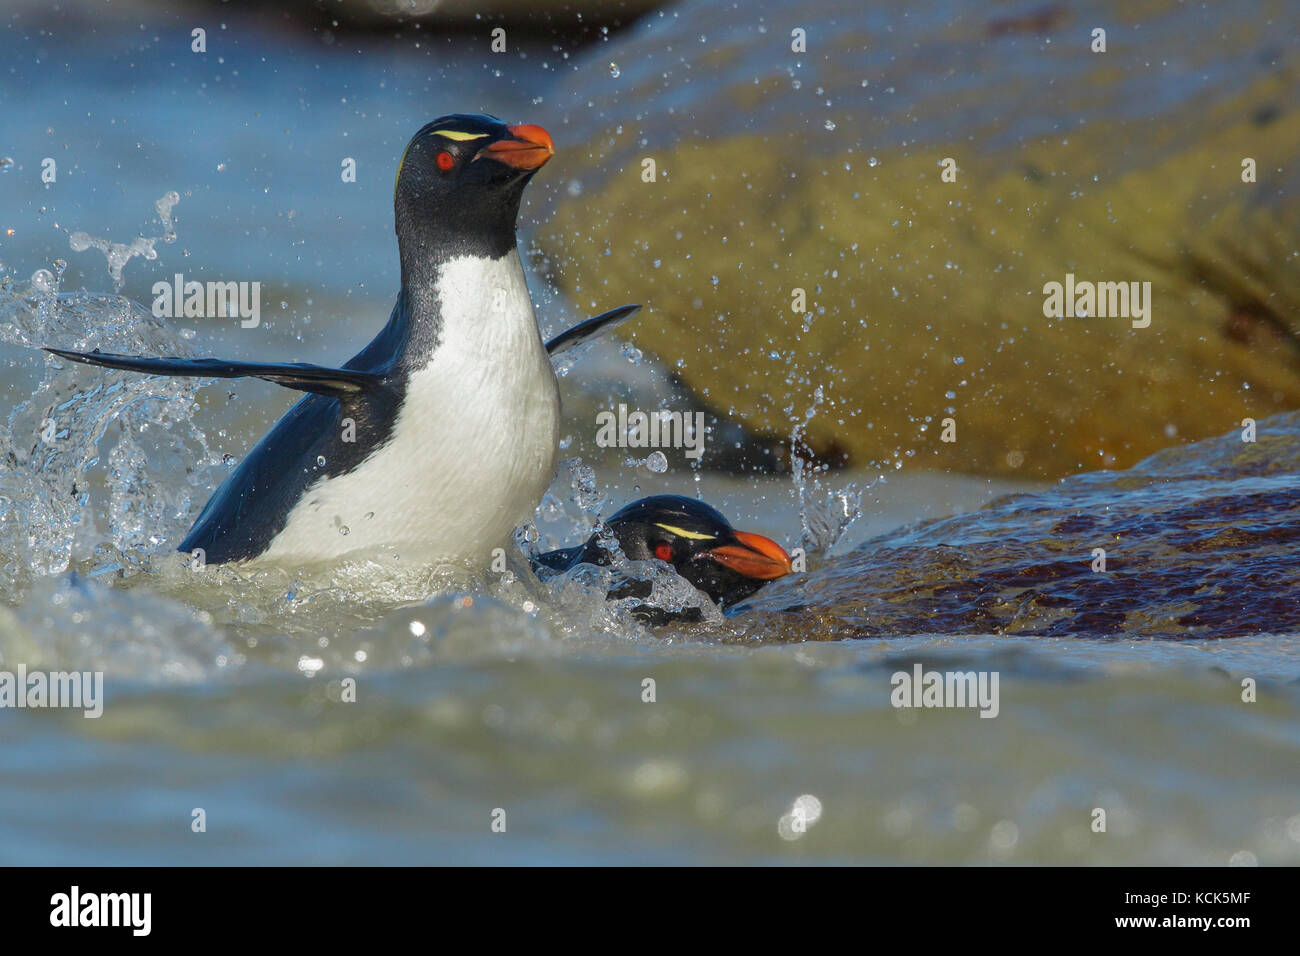 Rockhopper Penguin (Eudyptes chrysocome) emerging from the ocean in the Falkland Islands. - Stock Image